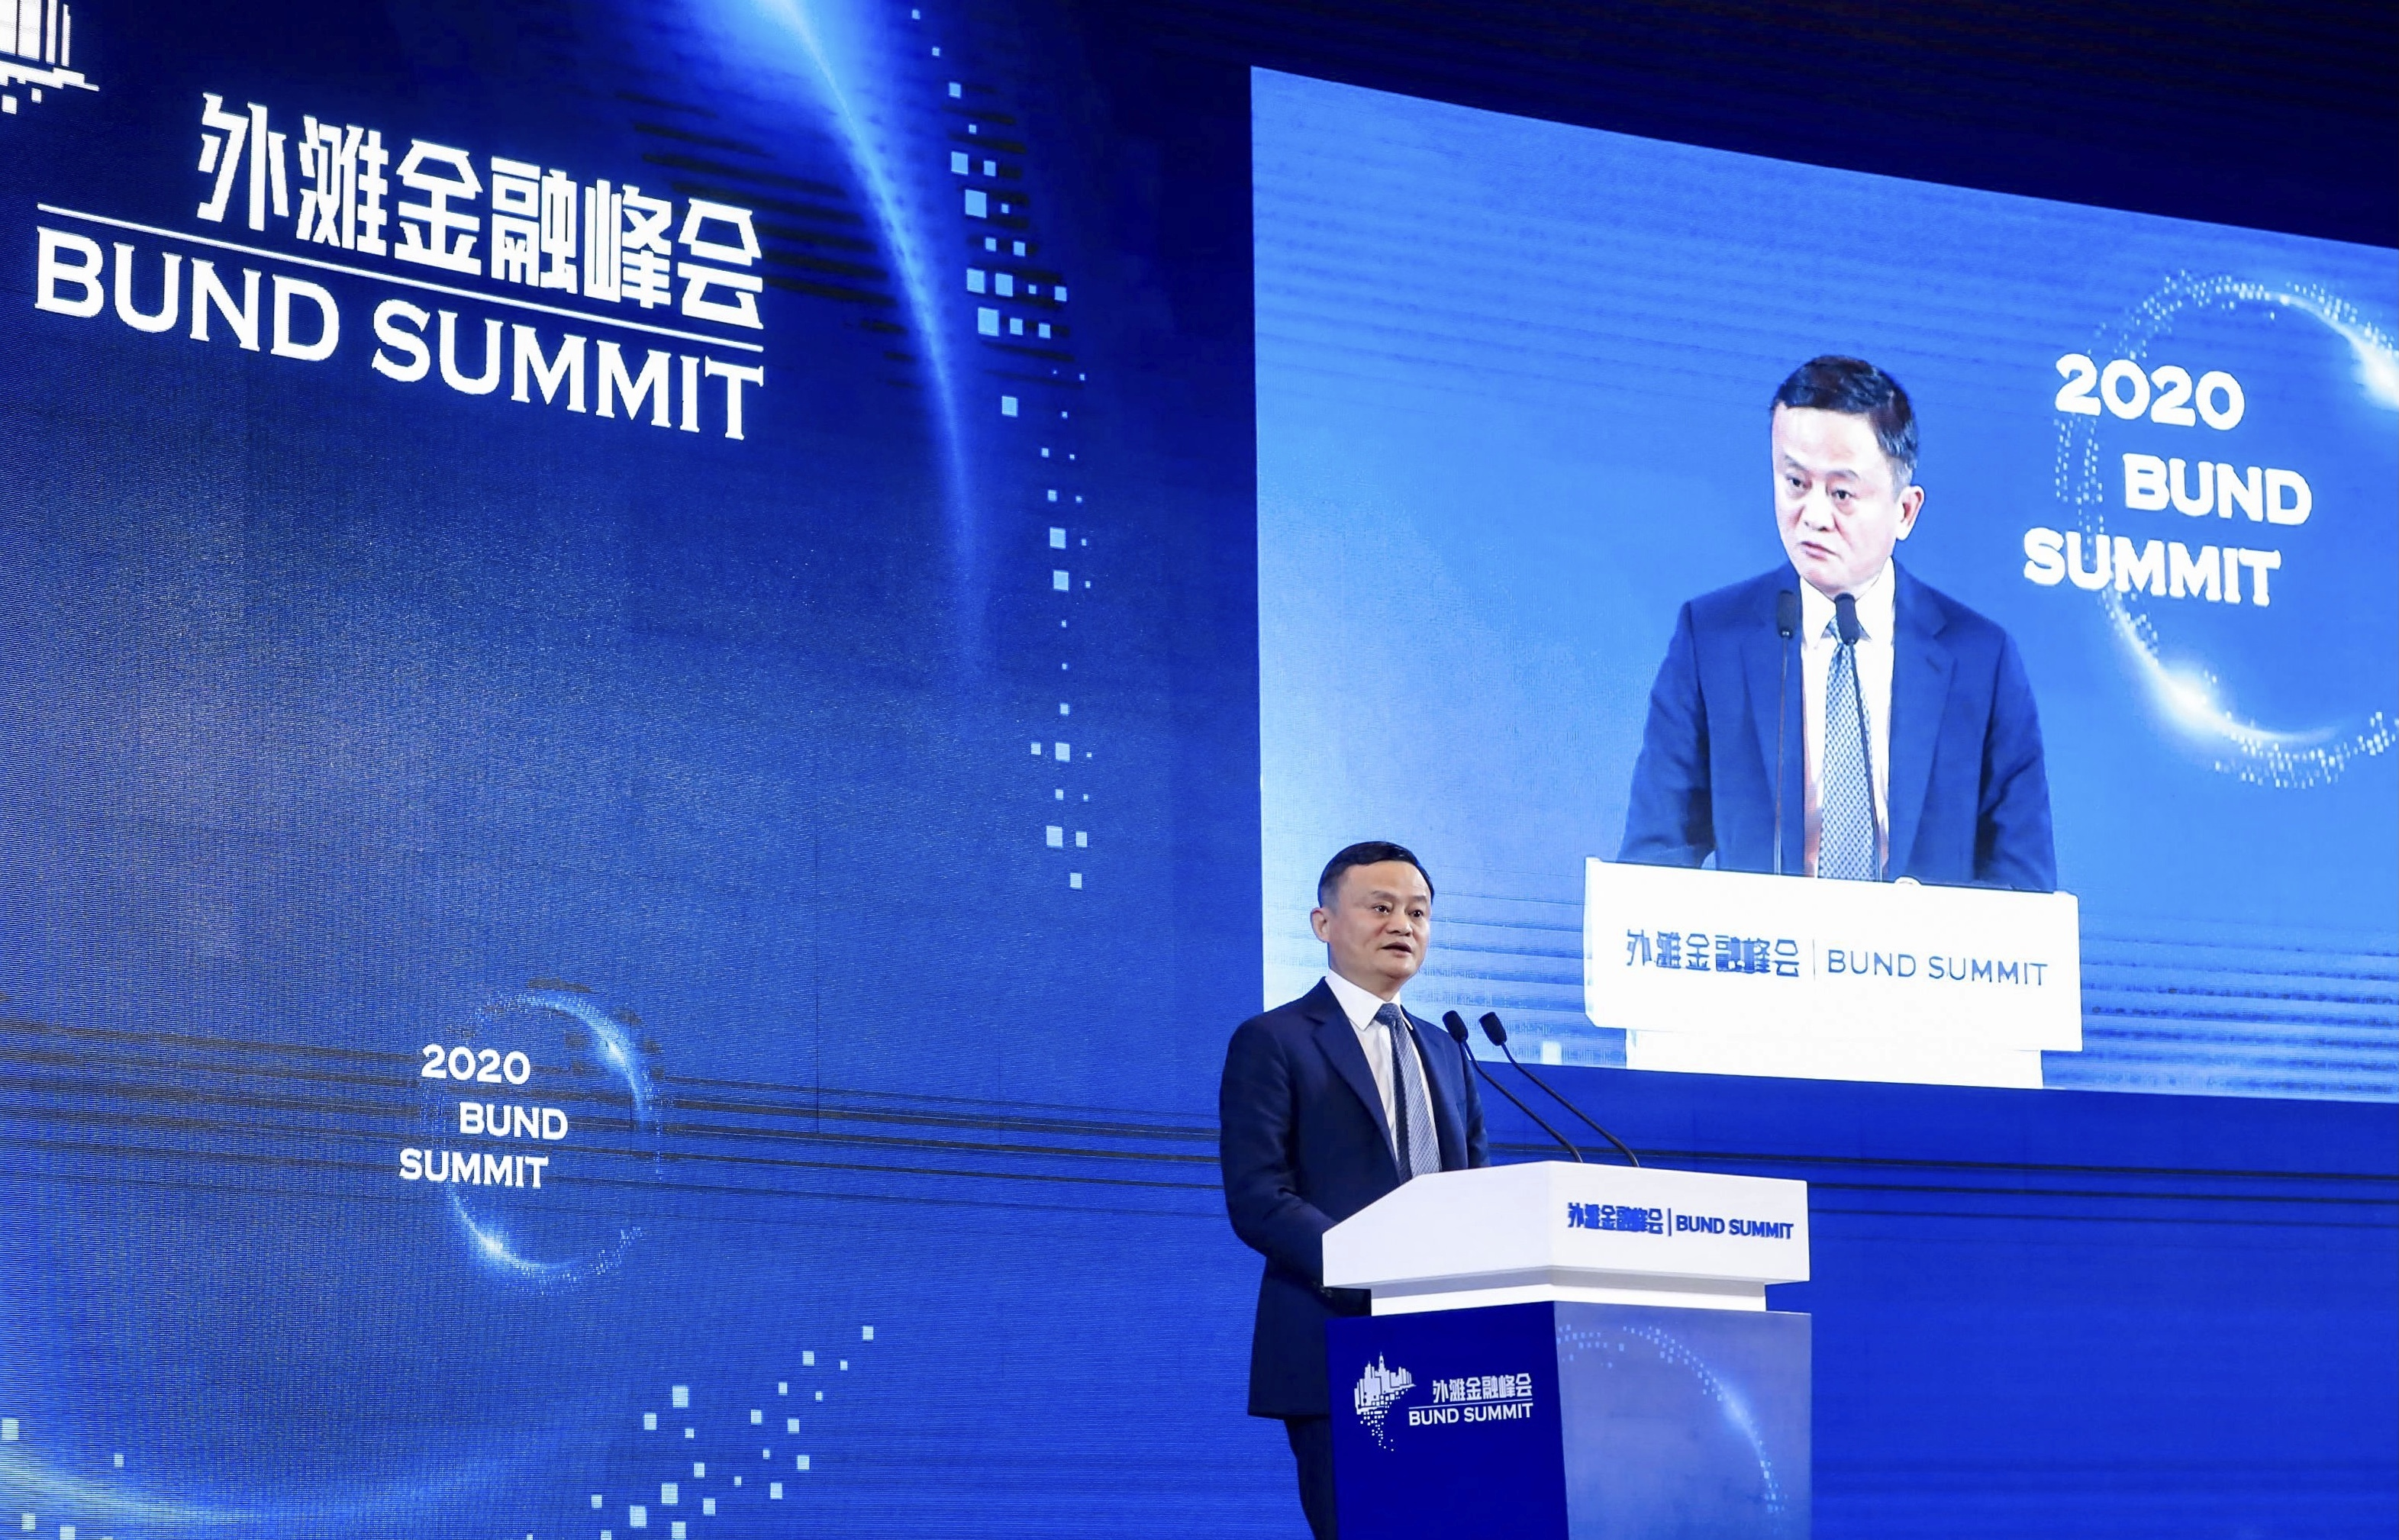 Jack Ma, the co-chair of the UN High-Level Panel on Digital Cooperation, founder of Alibaba Group, attends the Bund Summit in Shanghai. He says that the essence of finance is credit management. We must change the pawnshop idea of Finance and rely on the credit system.